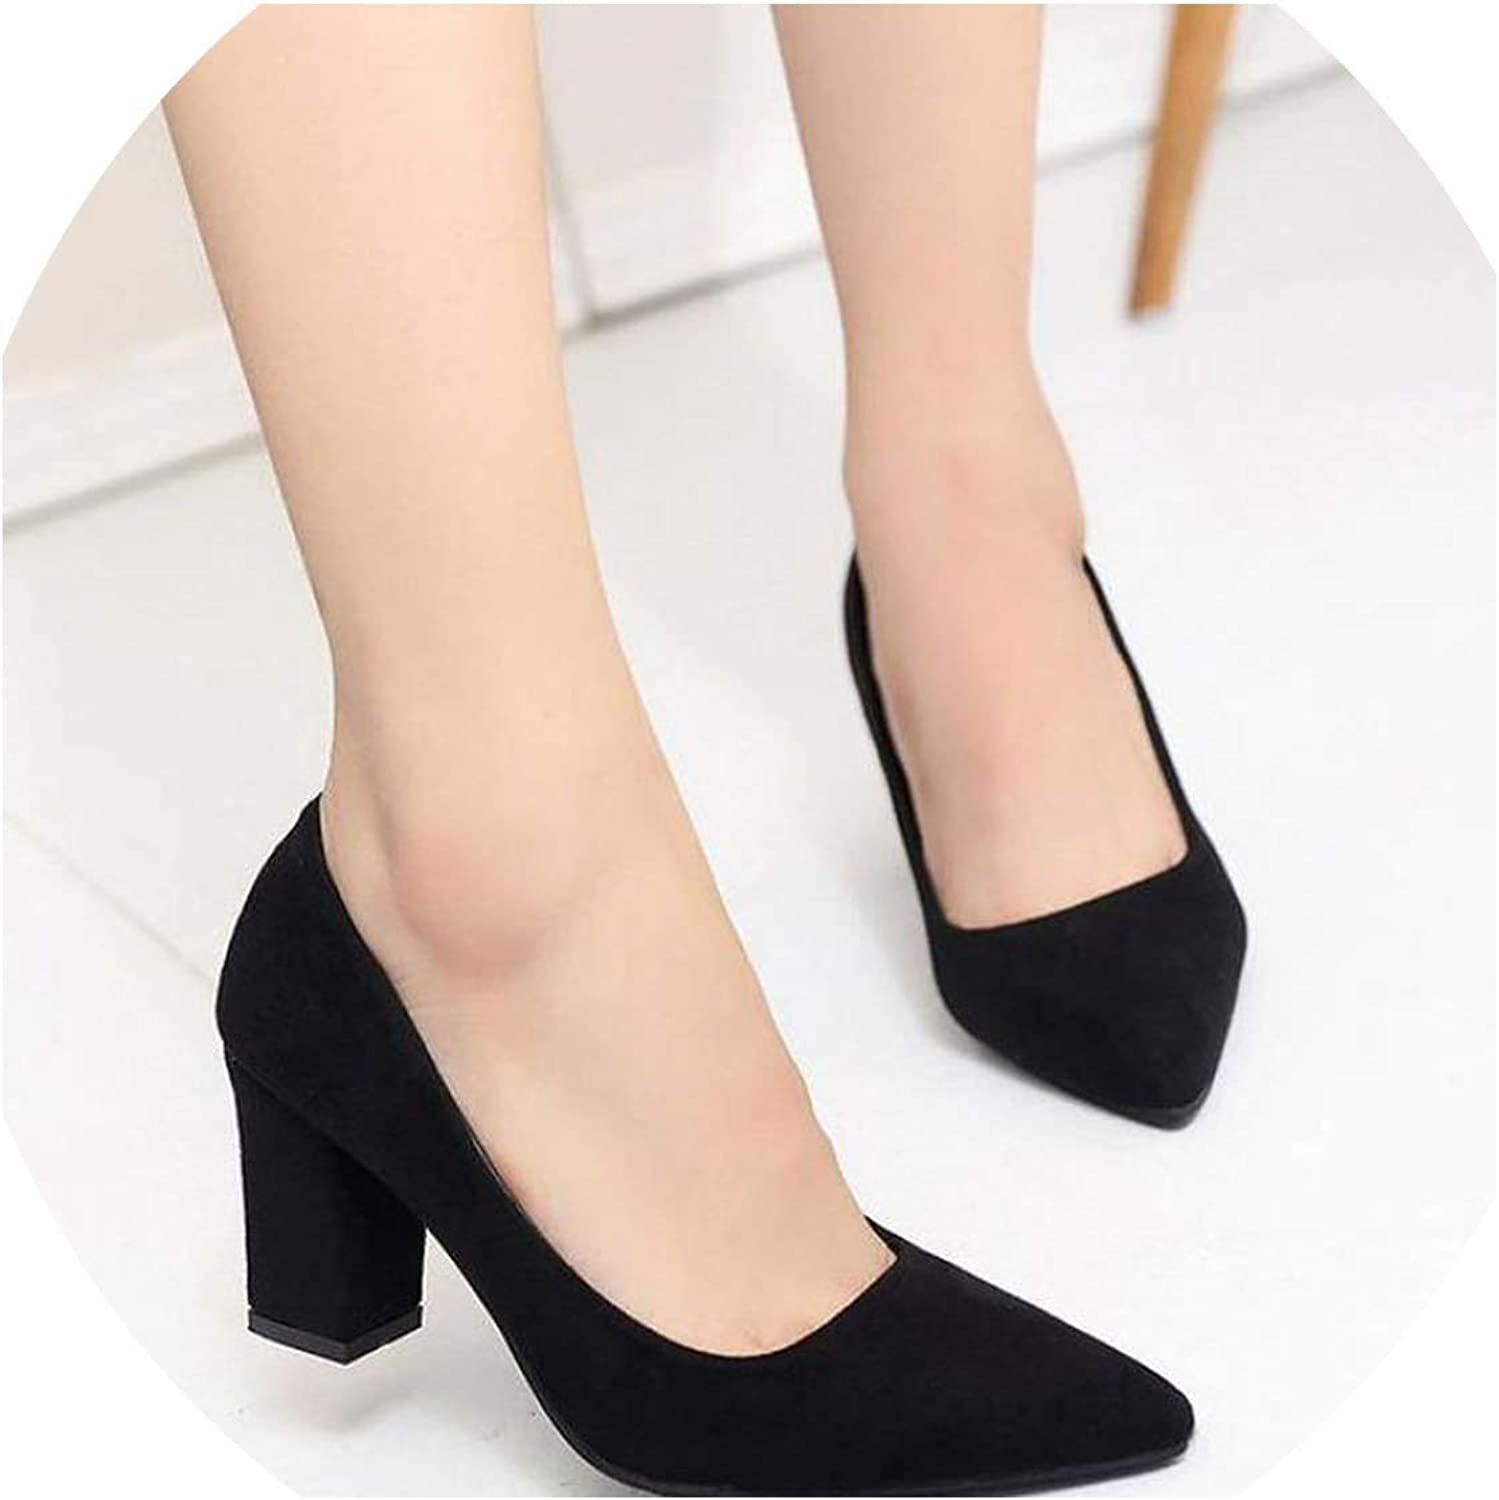 YP-fashion Women Pumps Sexy Nightclub Wedding Casual shoes Pointed Toe Parties Dress Slip-on